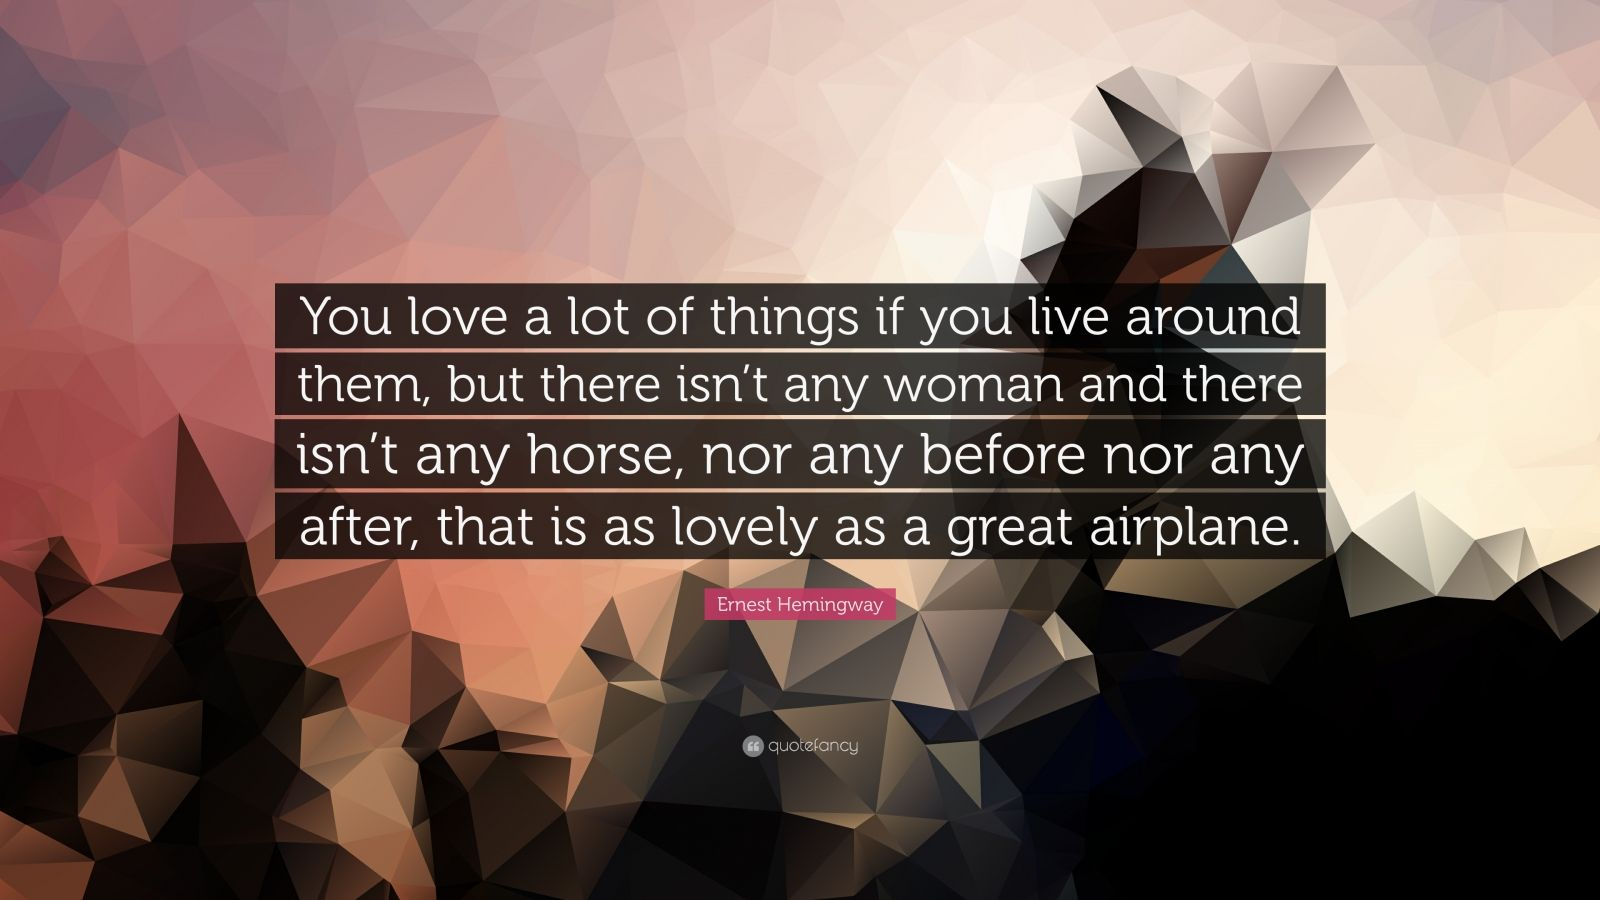 """Ernest Hemingway Quote: """"You love a lot of things if you live around them, but there isn't any woman and there isn't any horse, nor any before nor any after, that is as lovely as a great airplane."""""""